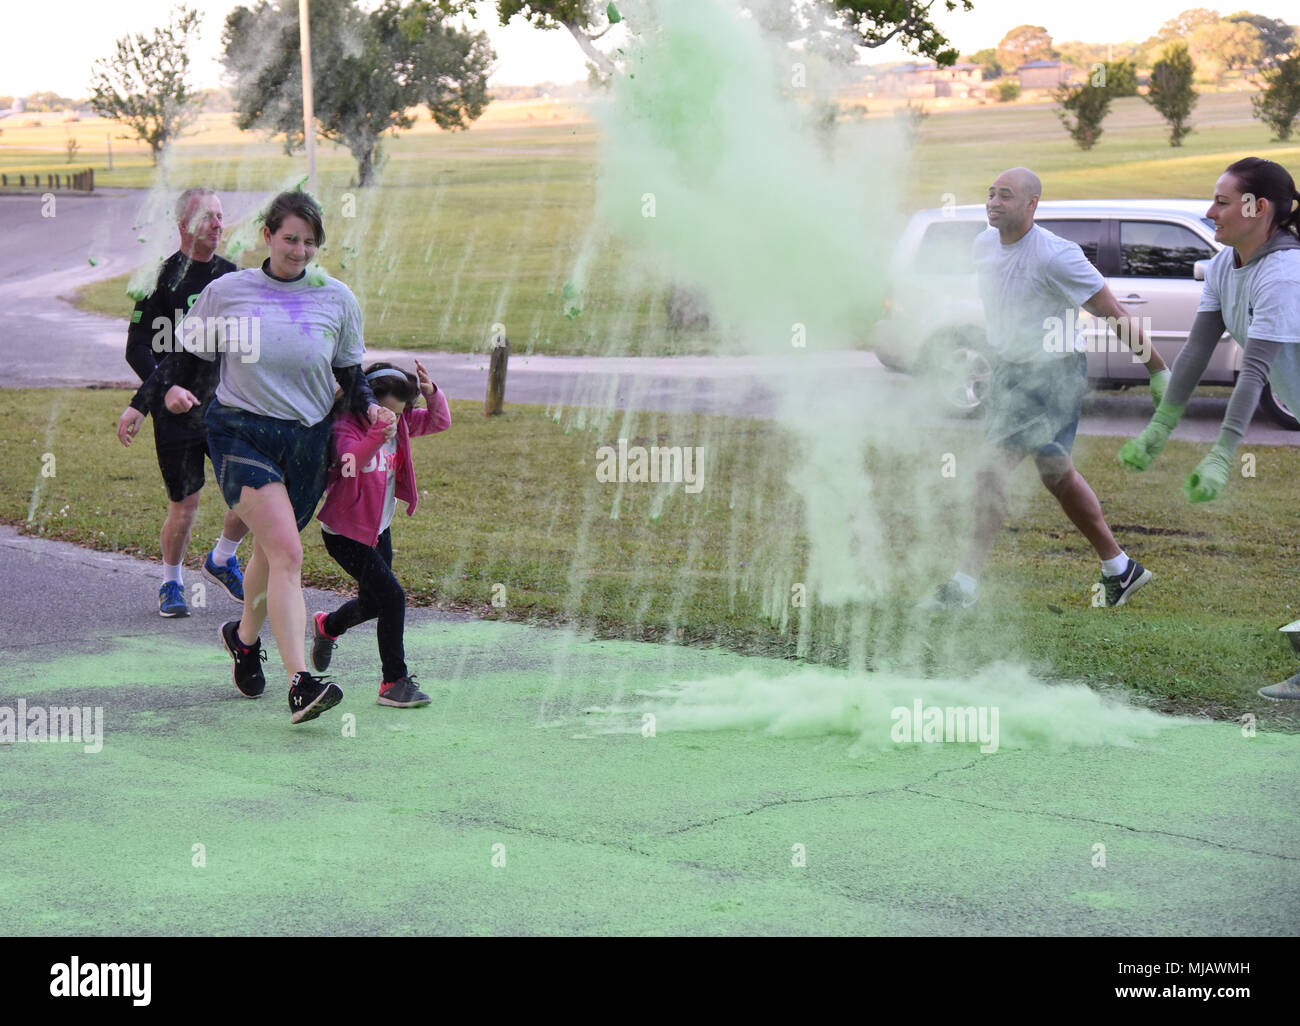 Keesler personnel run through green powder during the Air Force Assistance Fund Color Run at Keesler Air Force Base, Mississippi, April 20, 2018. The AFAF raises funds for charitable affiliates that provide support to Air Force families in need. (U.S. Air Force photo by Kemberly Groue) - Stock Image